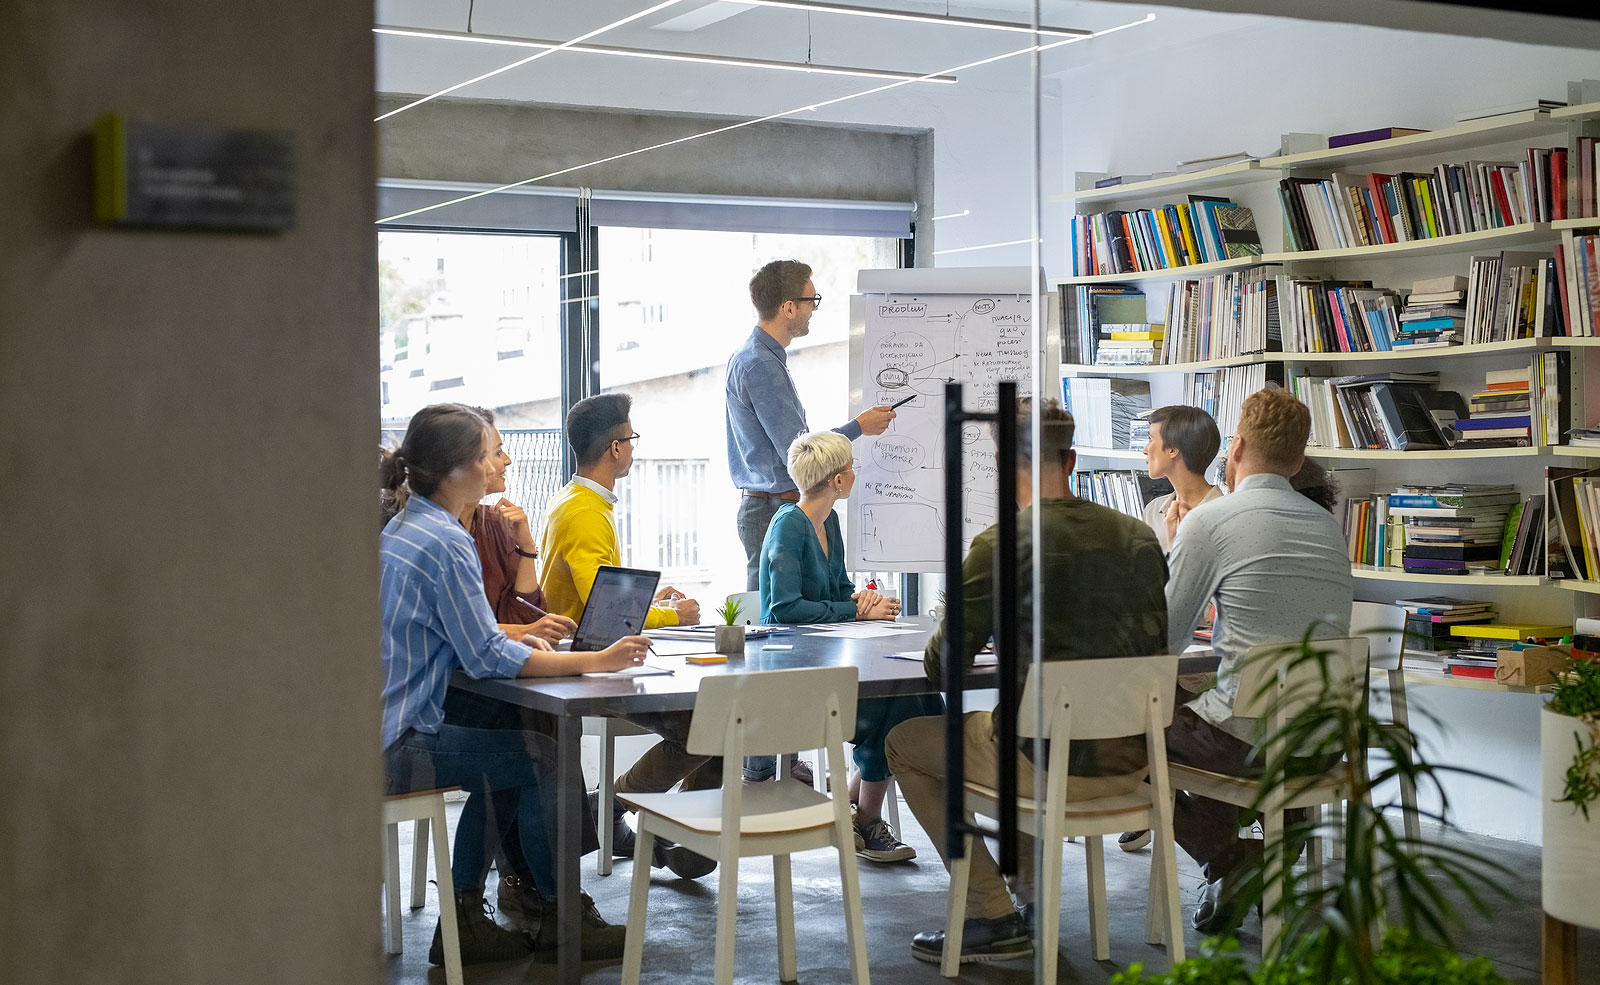 The 5 Most Effective Tactics for Building Cross-Functional Teams